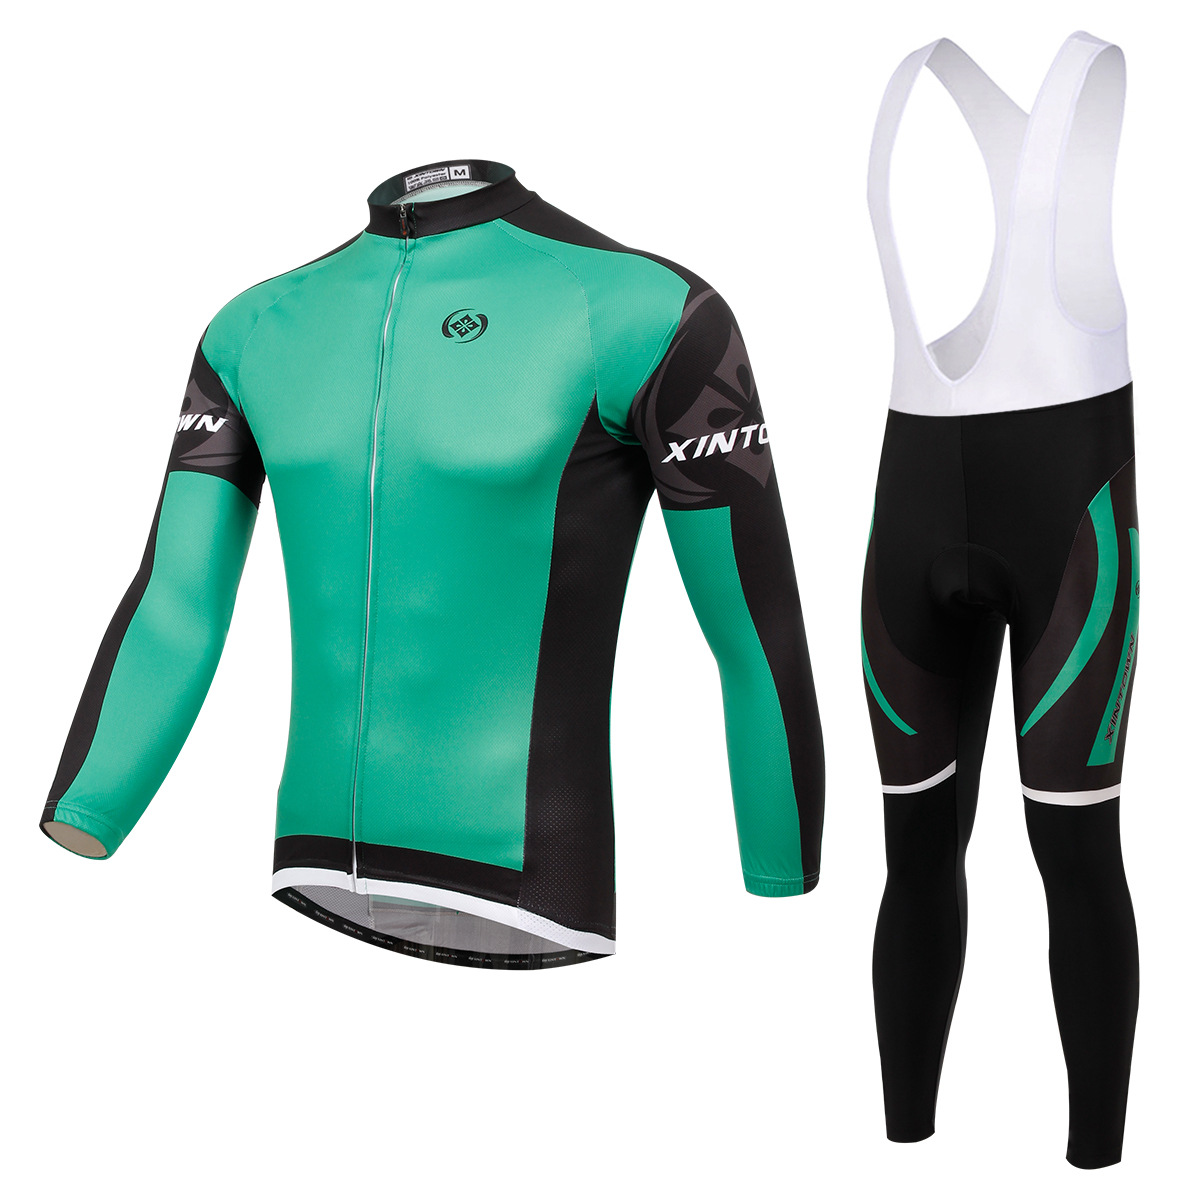 ls cycling jersey+bib pants (1)